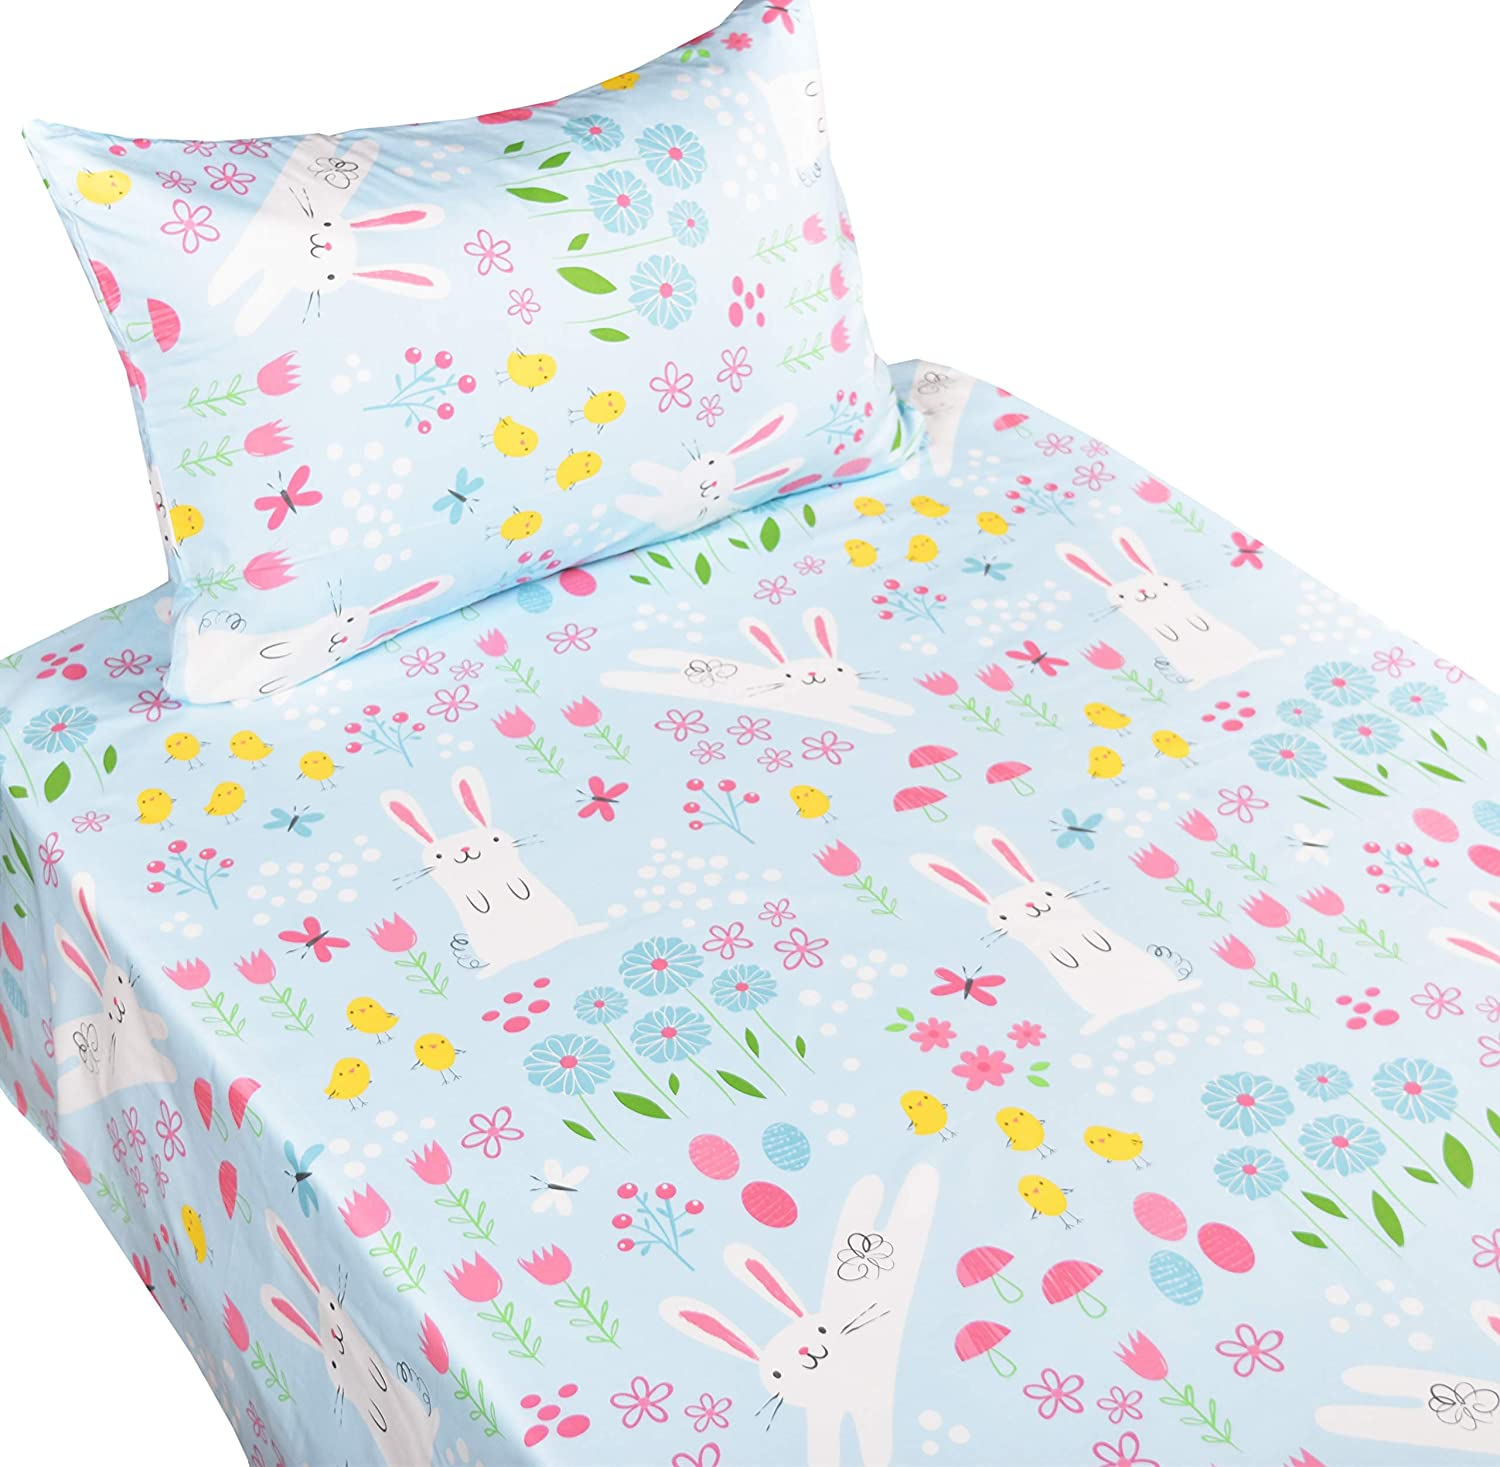 J-pinno Cute Rabbit Paly in The Flowers Twin Sheet Set for Kids Boys Girls Children,100% Cotton, Flat Sheet + Fitted Sheet + Pillowcase Bedding Set